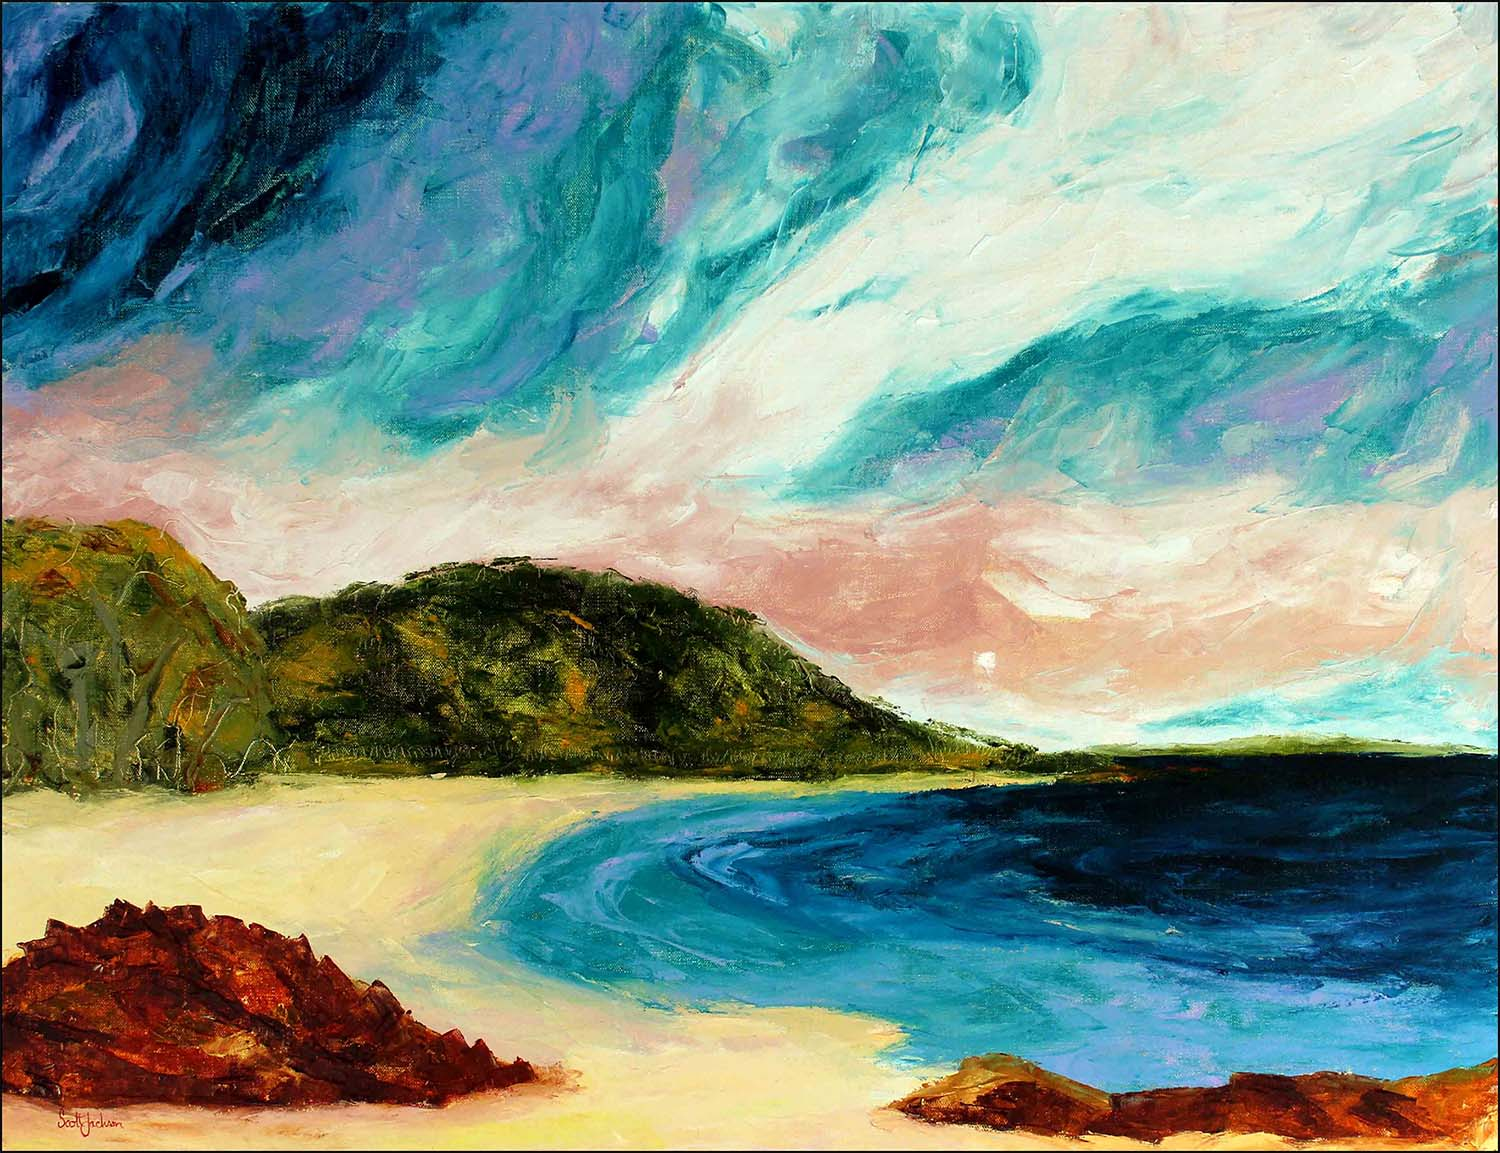 """I was inspired to paint this dramatic skyscape after camping at Jervis Bay on the south coast of NSW. ..watching storms over the ocean is always fascinating and I have spent a lot of time doing it ..great to see !  Title """" Wild Sky Over The Bay """", ref 0617, oil on linen, 91 cm x 122 cm, ready to hang,  $1690 AUD"""